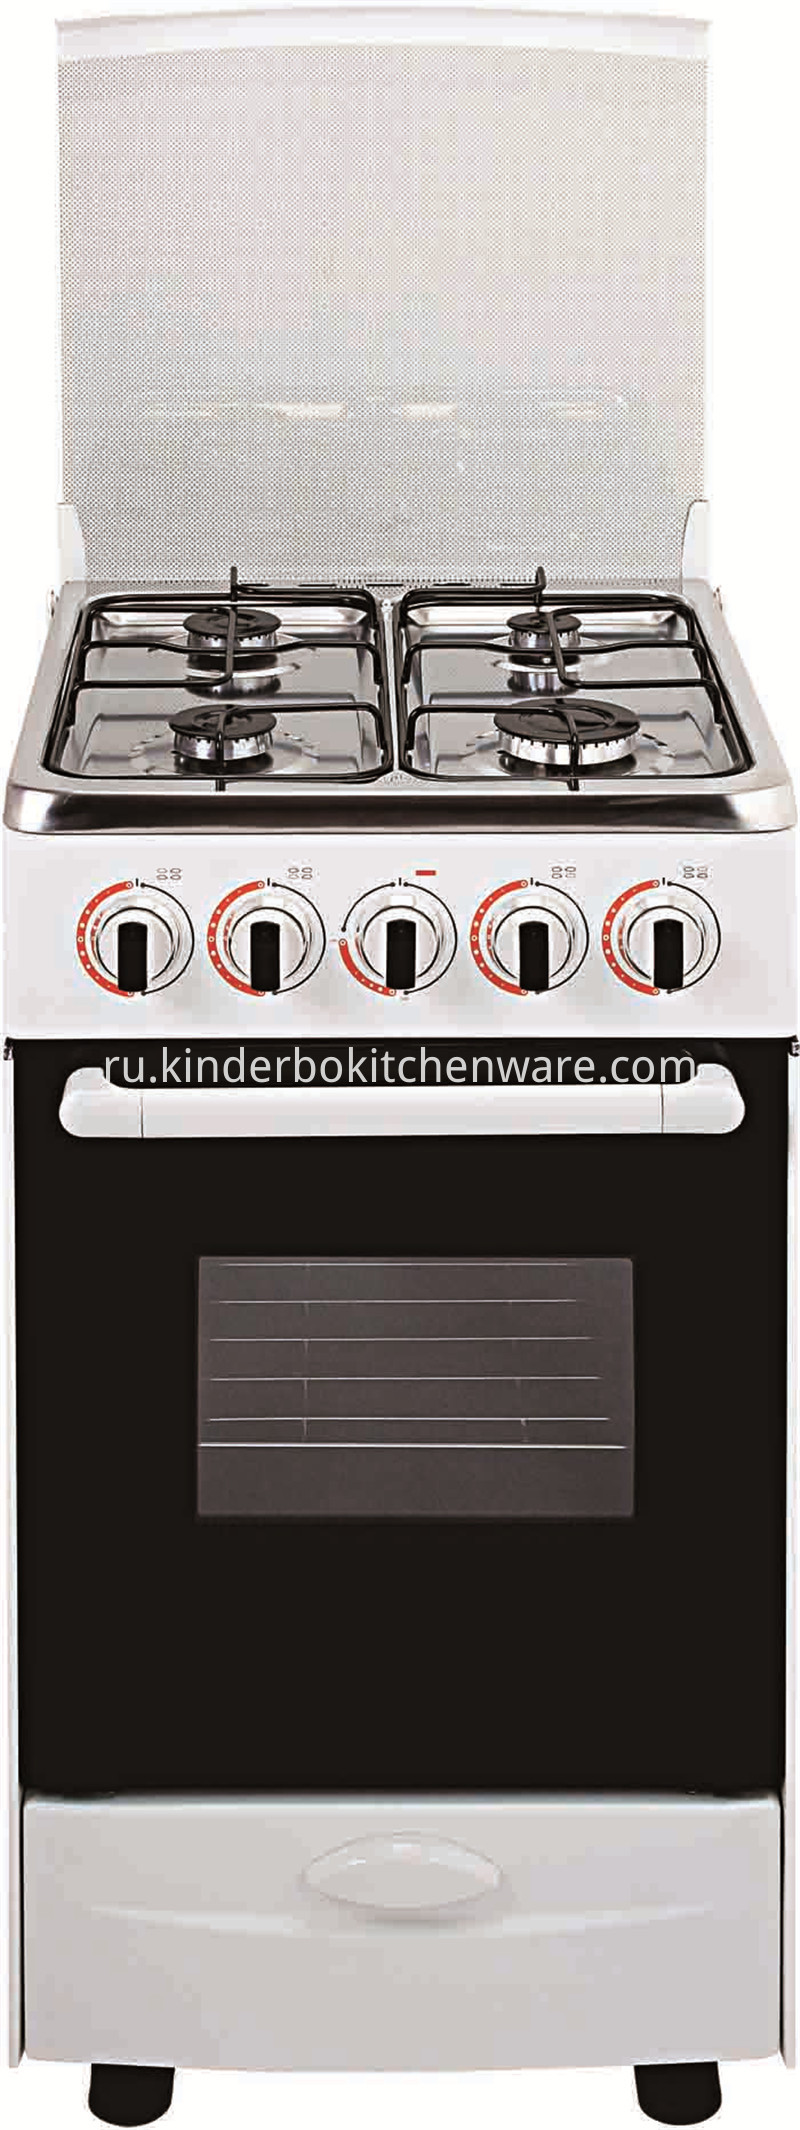 Kitchen Professional 4 Burner Free Standing Gas Stove with Oven